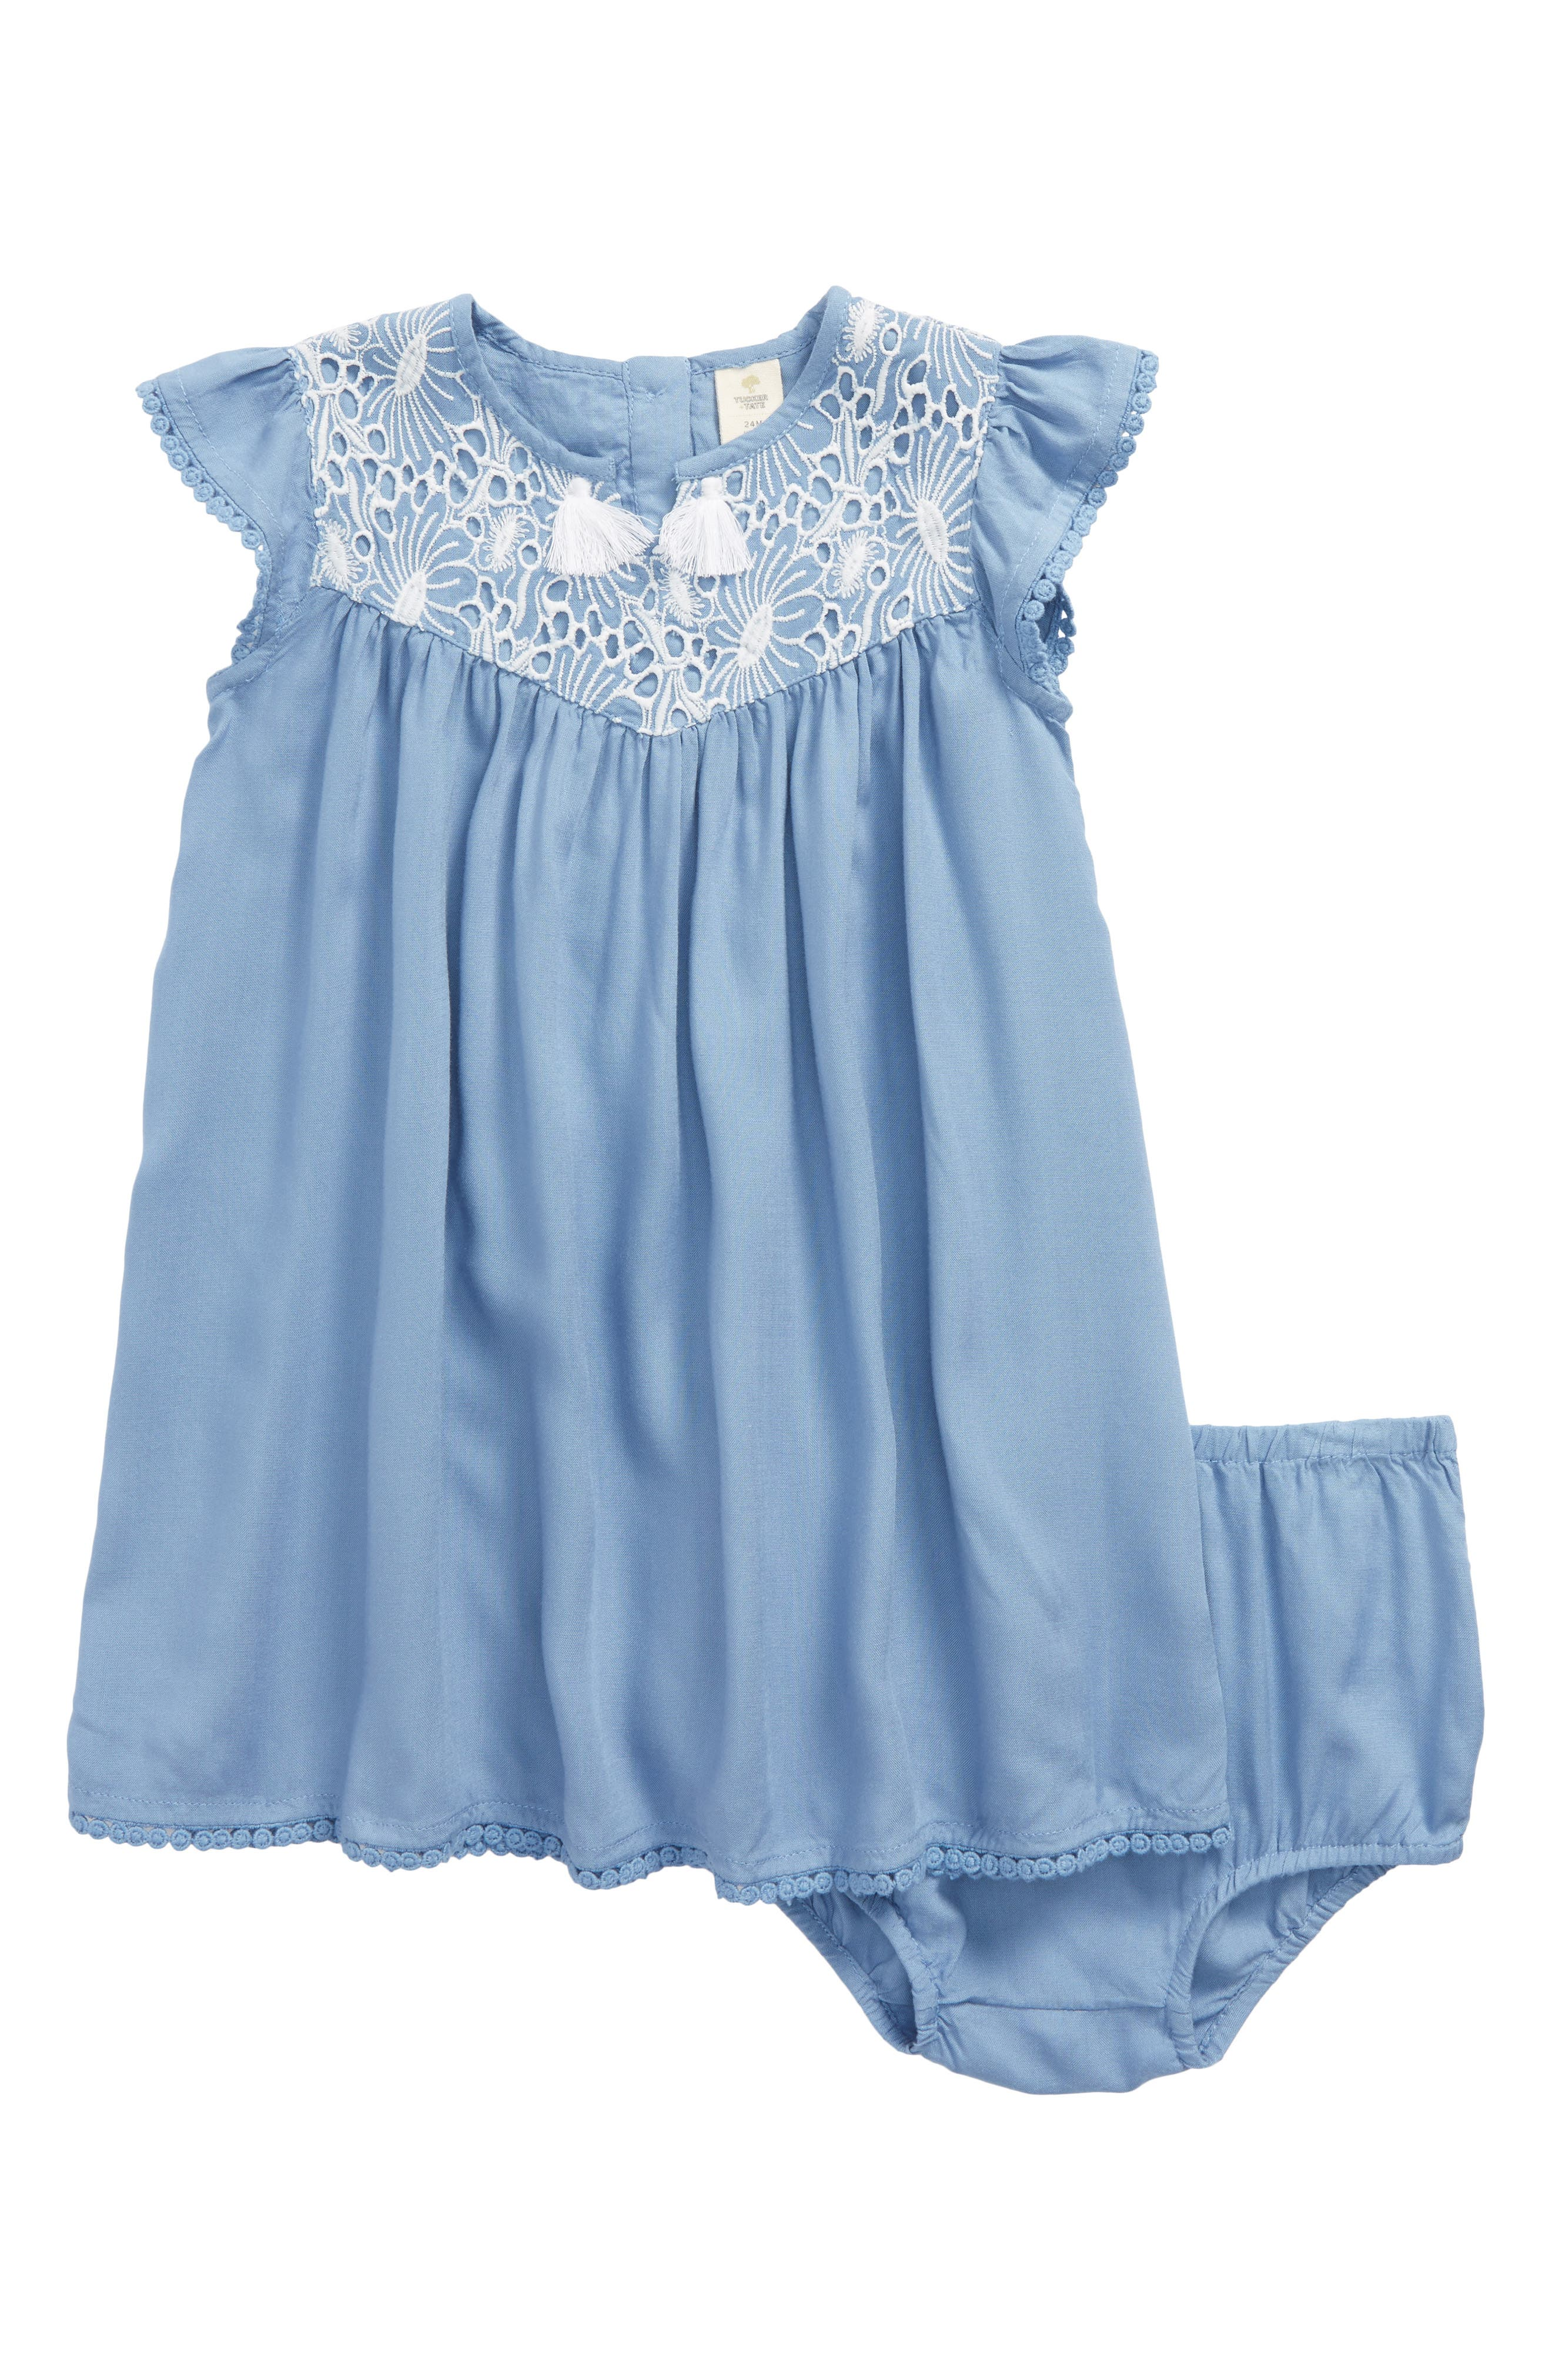 Baby Girls\' Dresses Clothing: Dresses, Bodysuits & Footies | Nordstrom